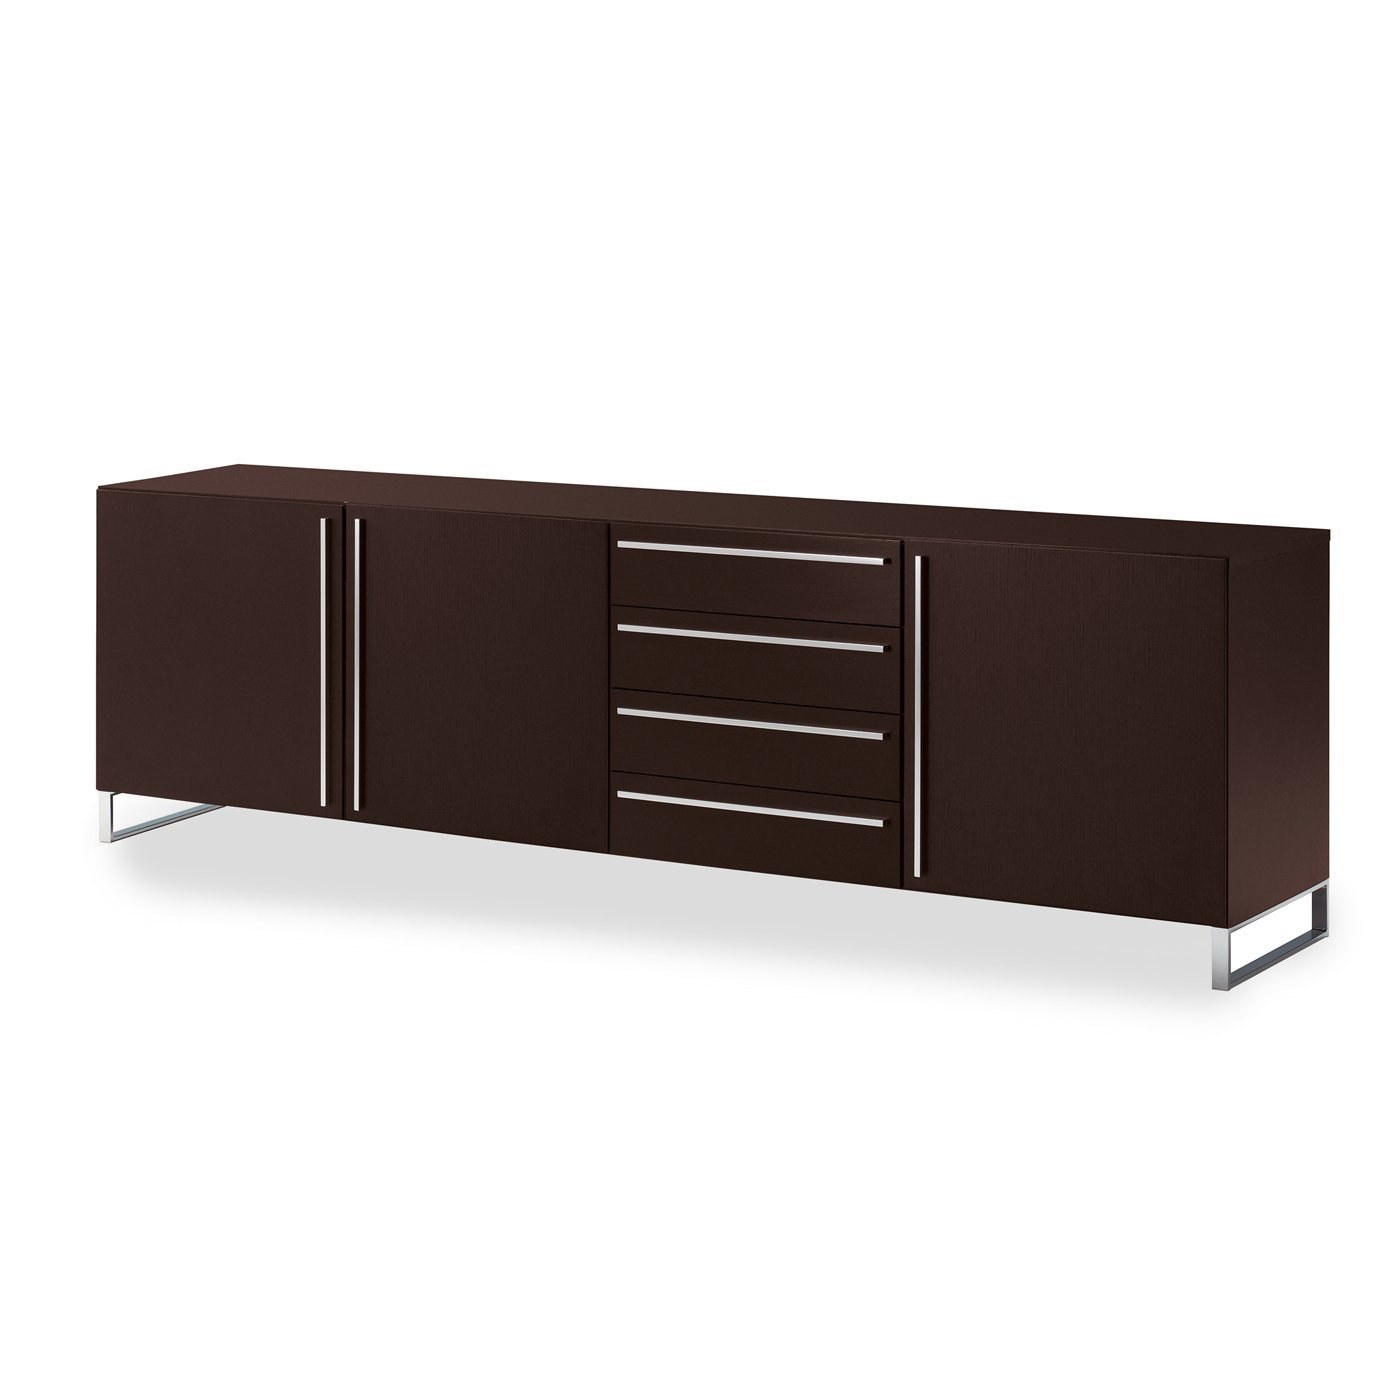 Valencia Buffet Sideboard Life Sideboard By Domitalia